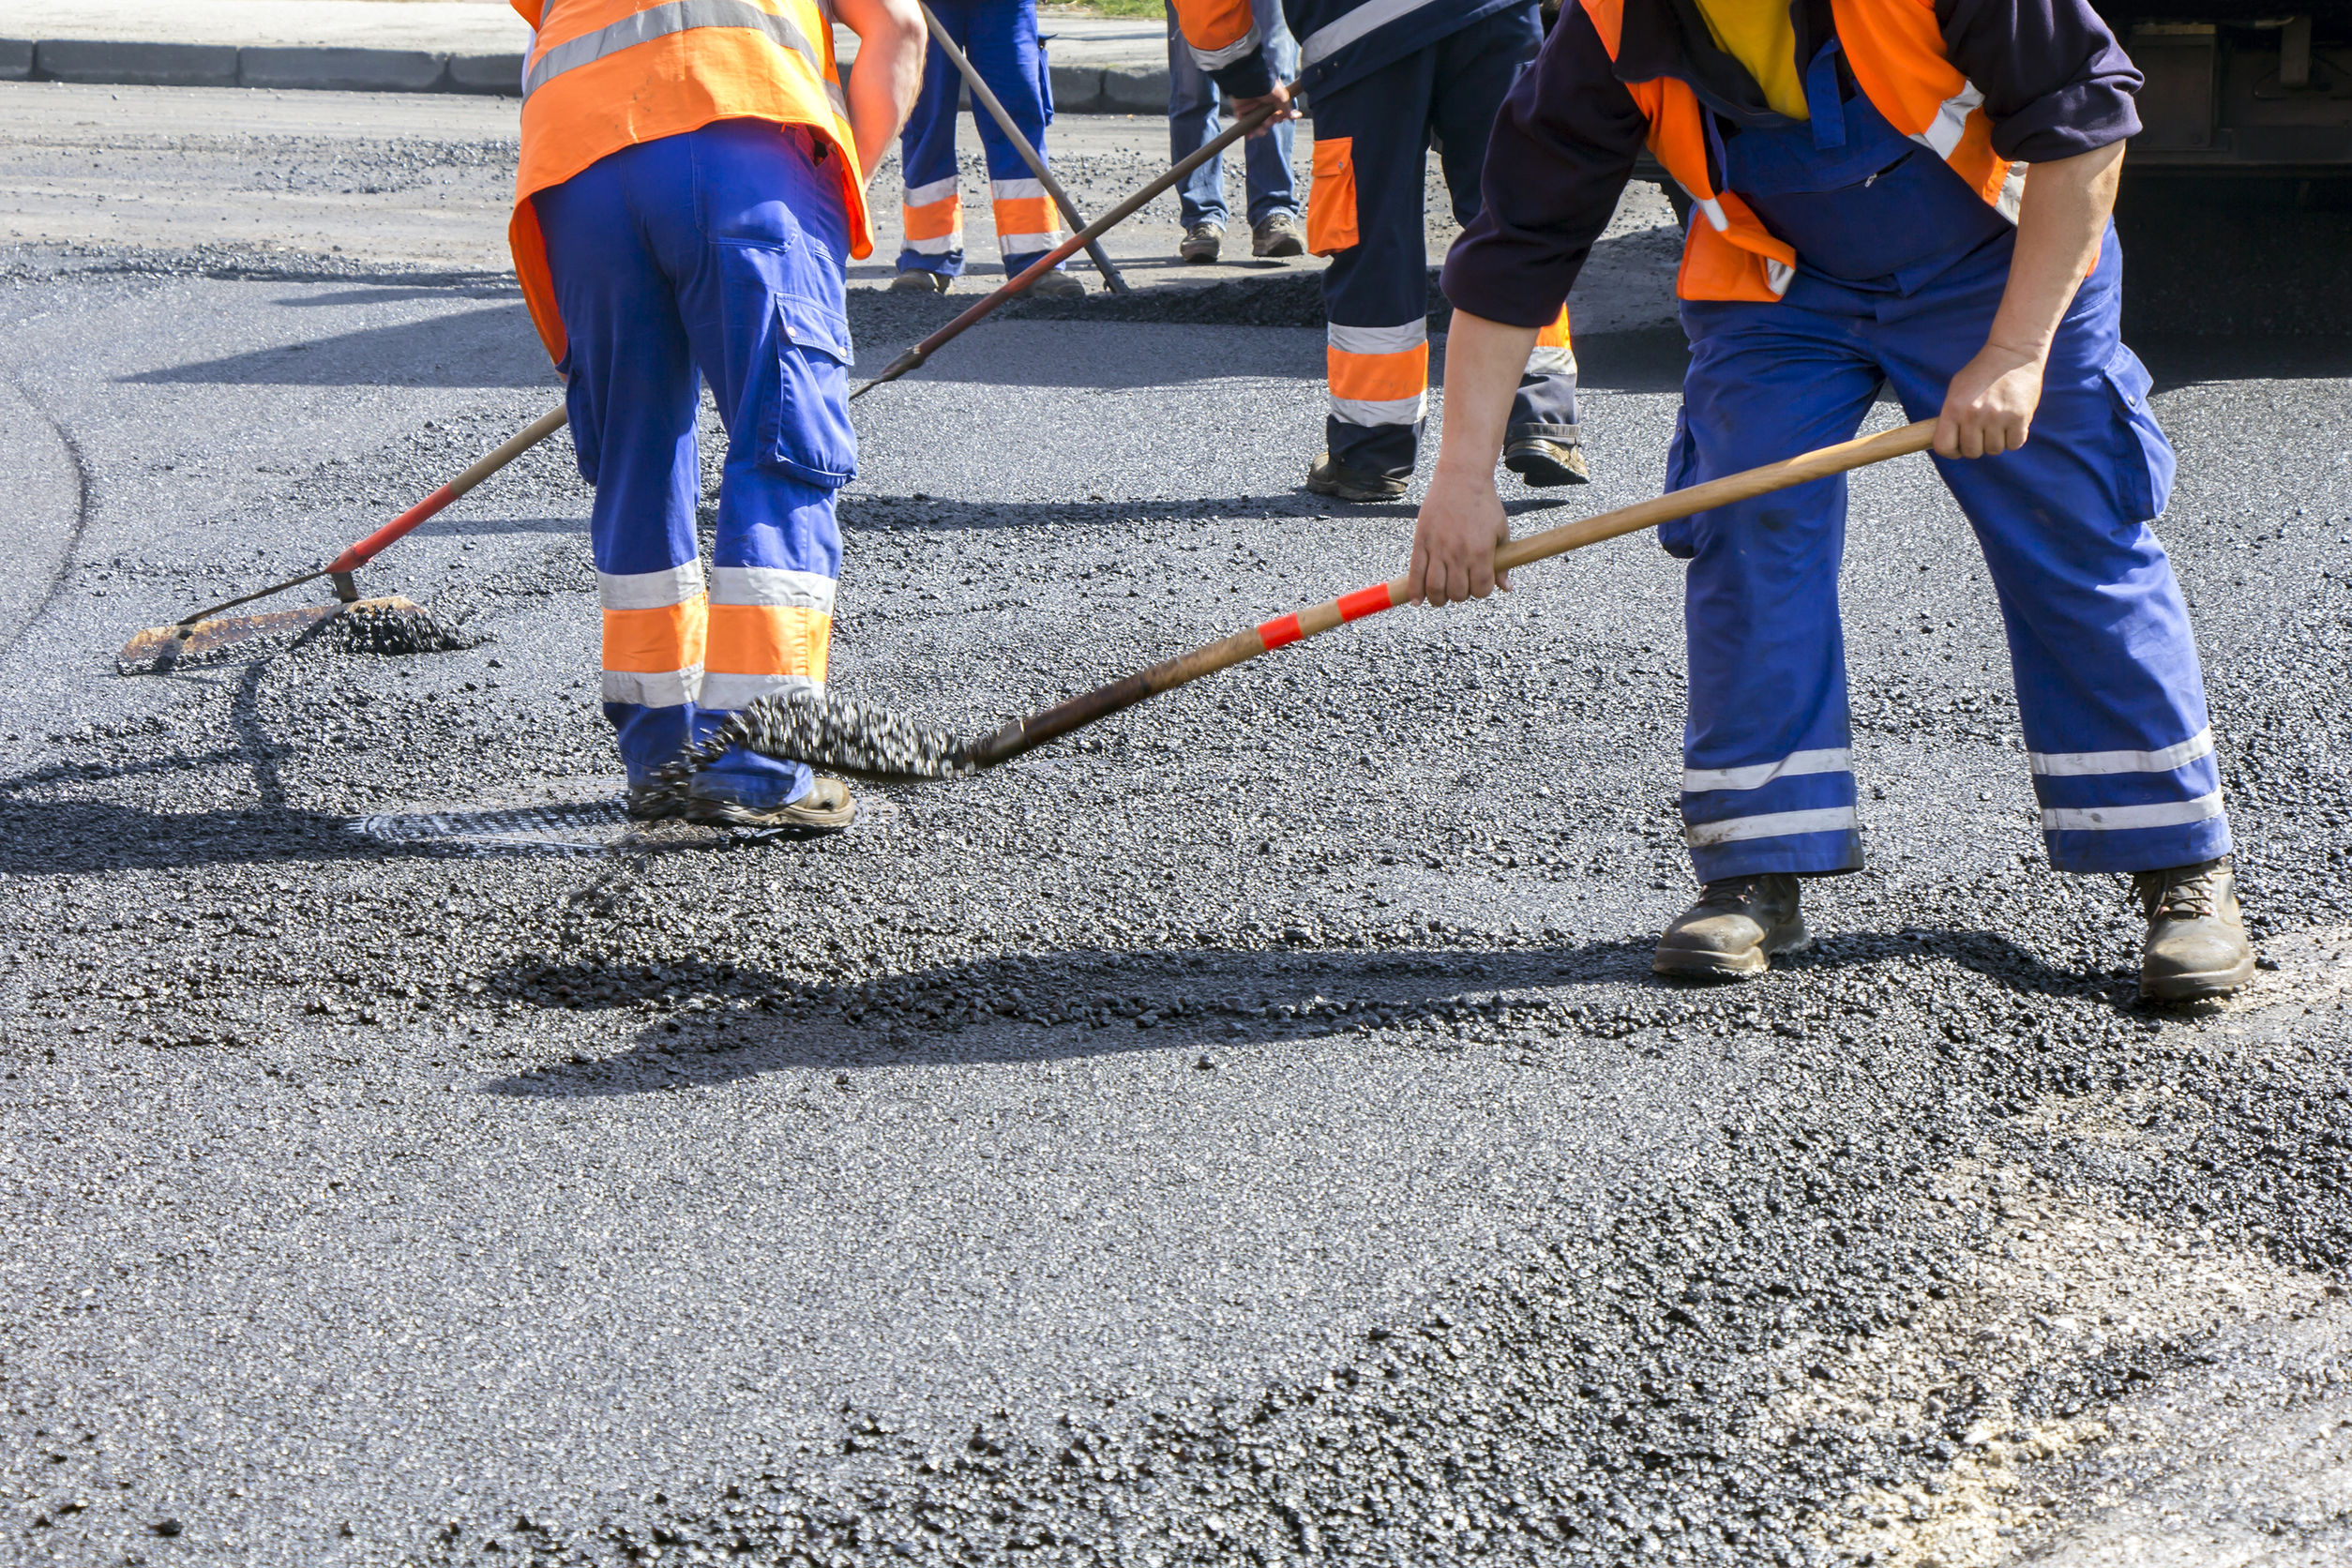 Asphalt Paving Company in Severn, Maryland | A&M Asphalt Paving